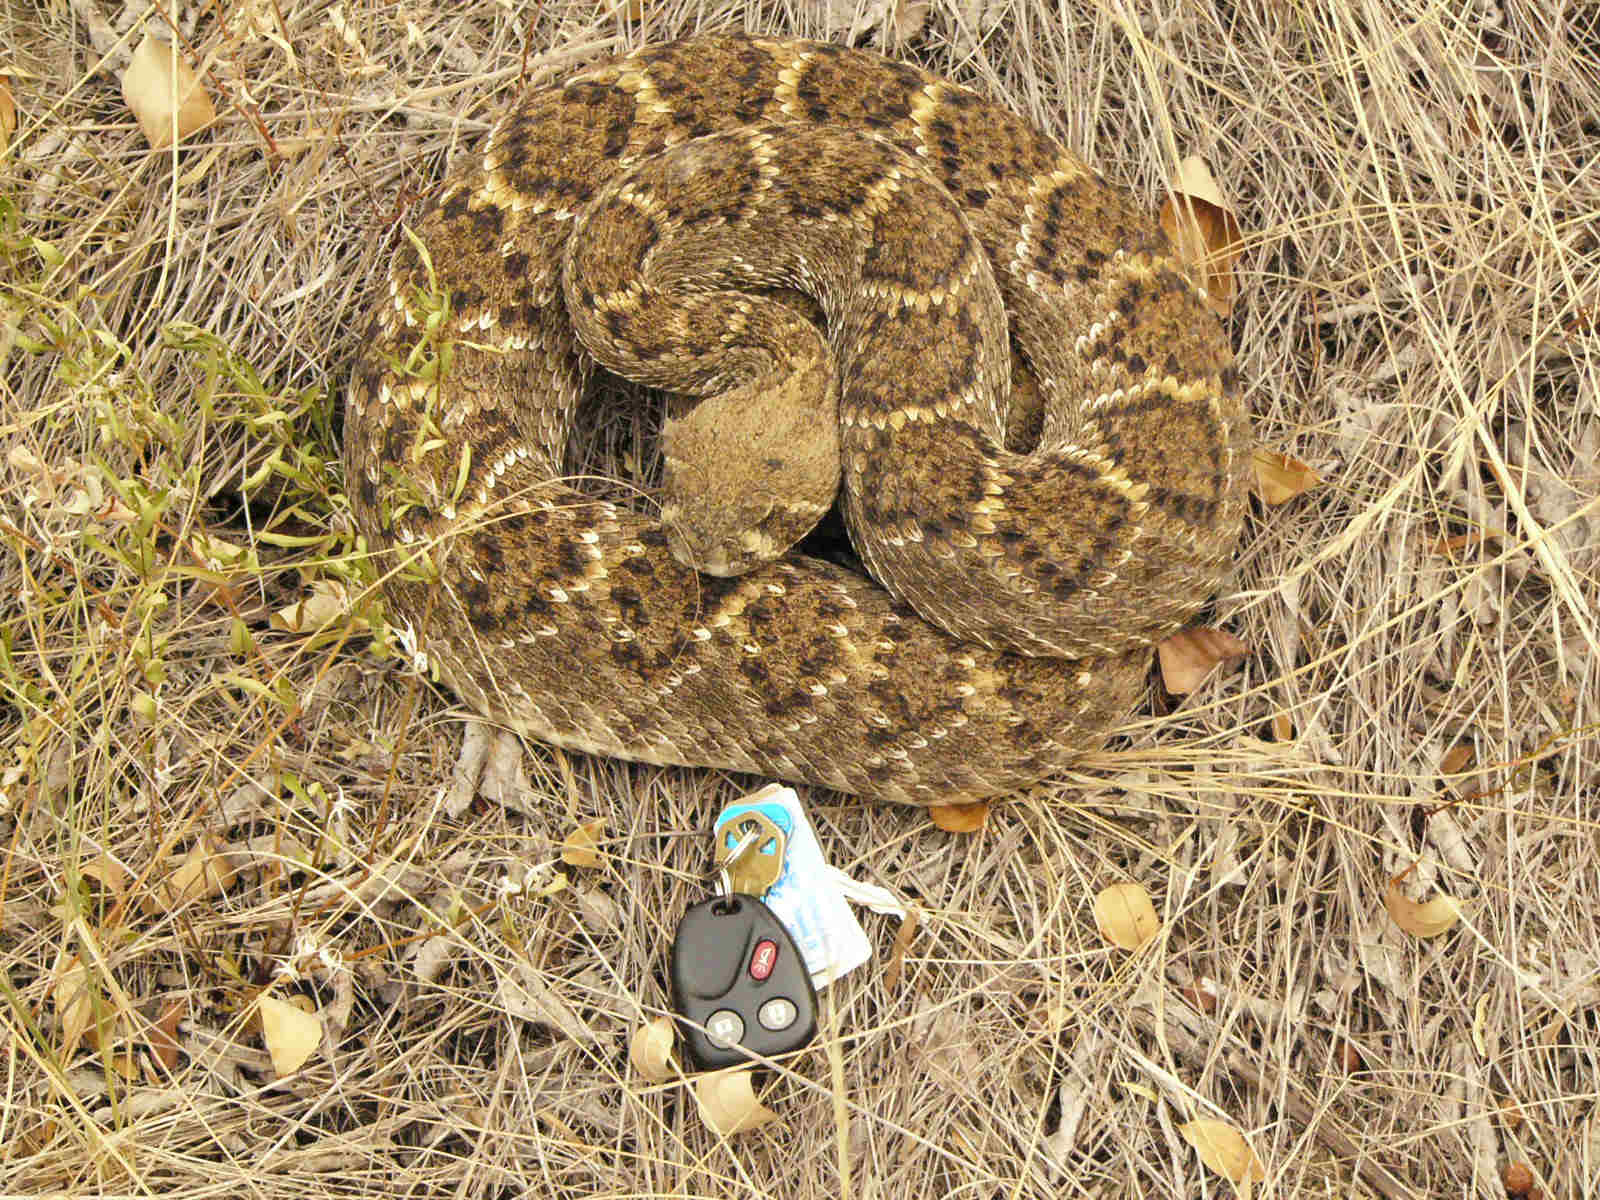 Rattlesnake on ground with car keys for size comparison